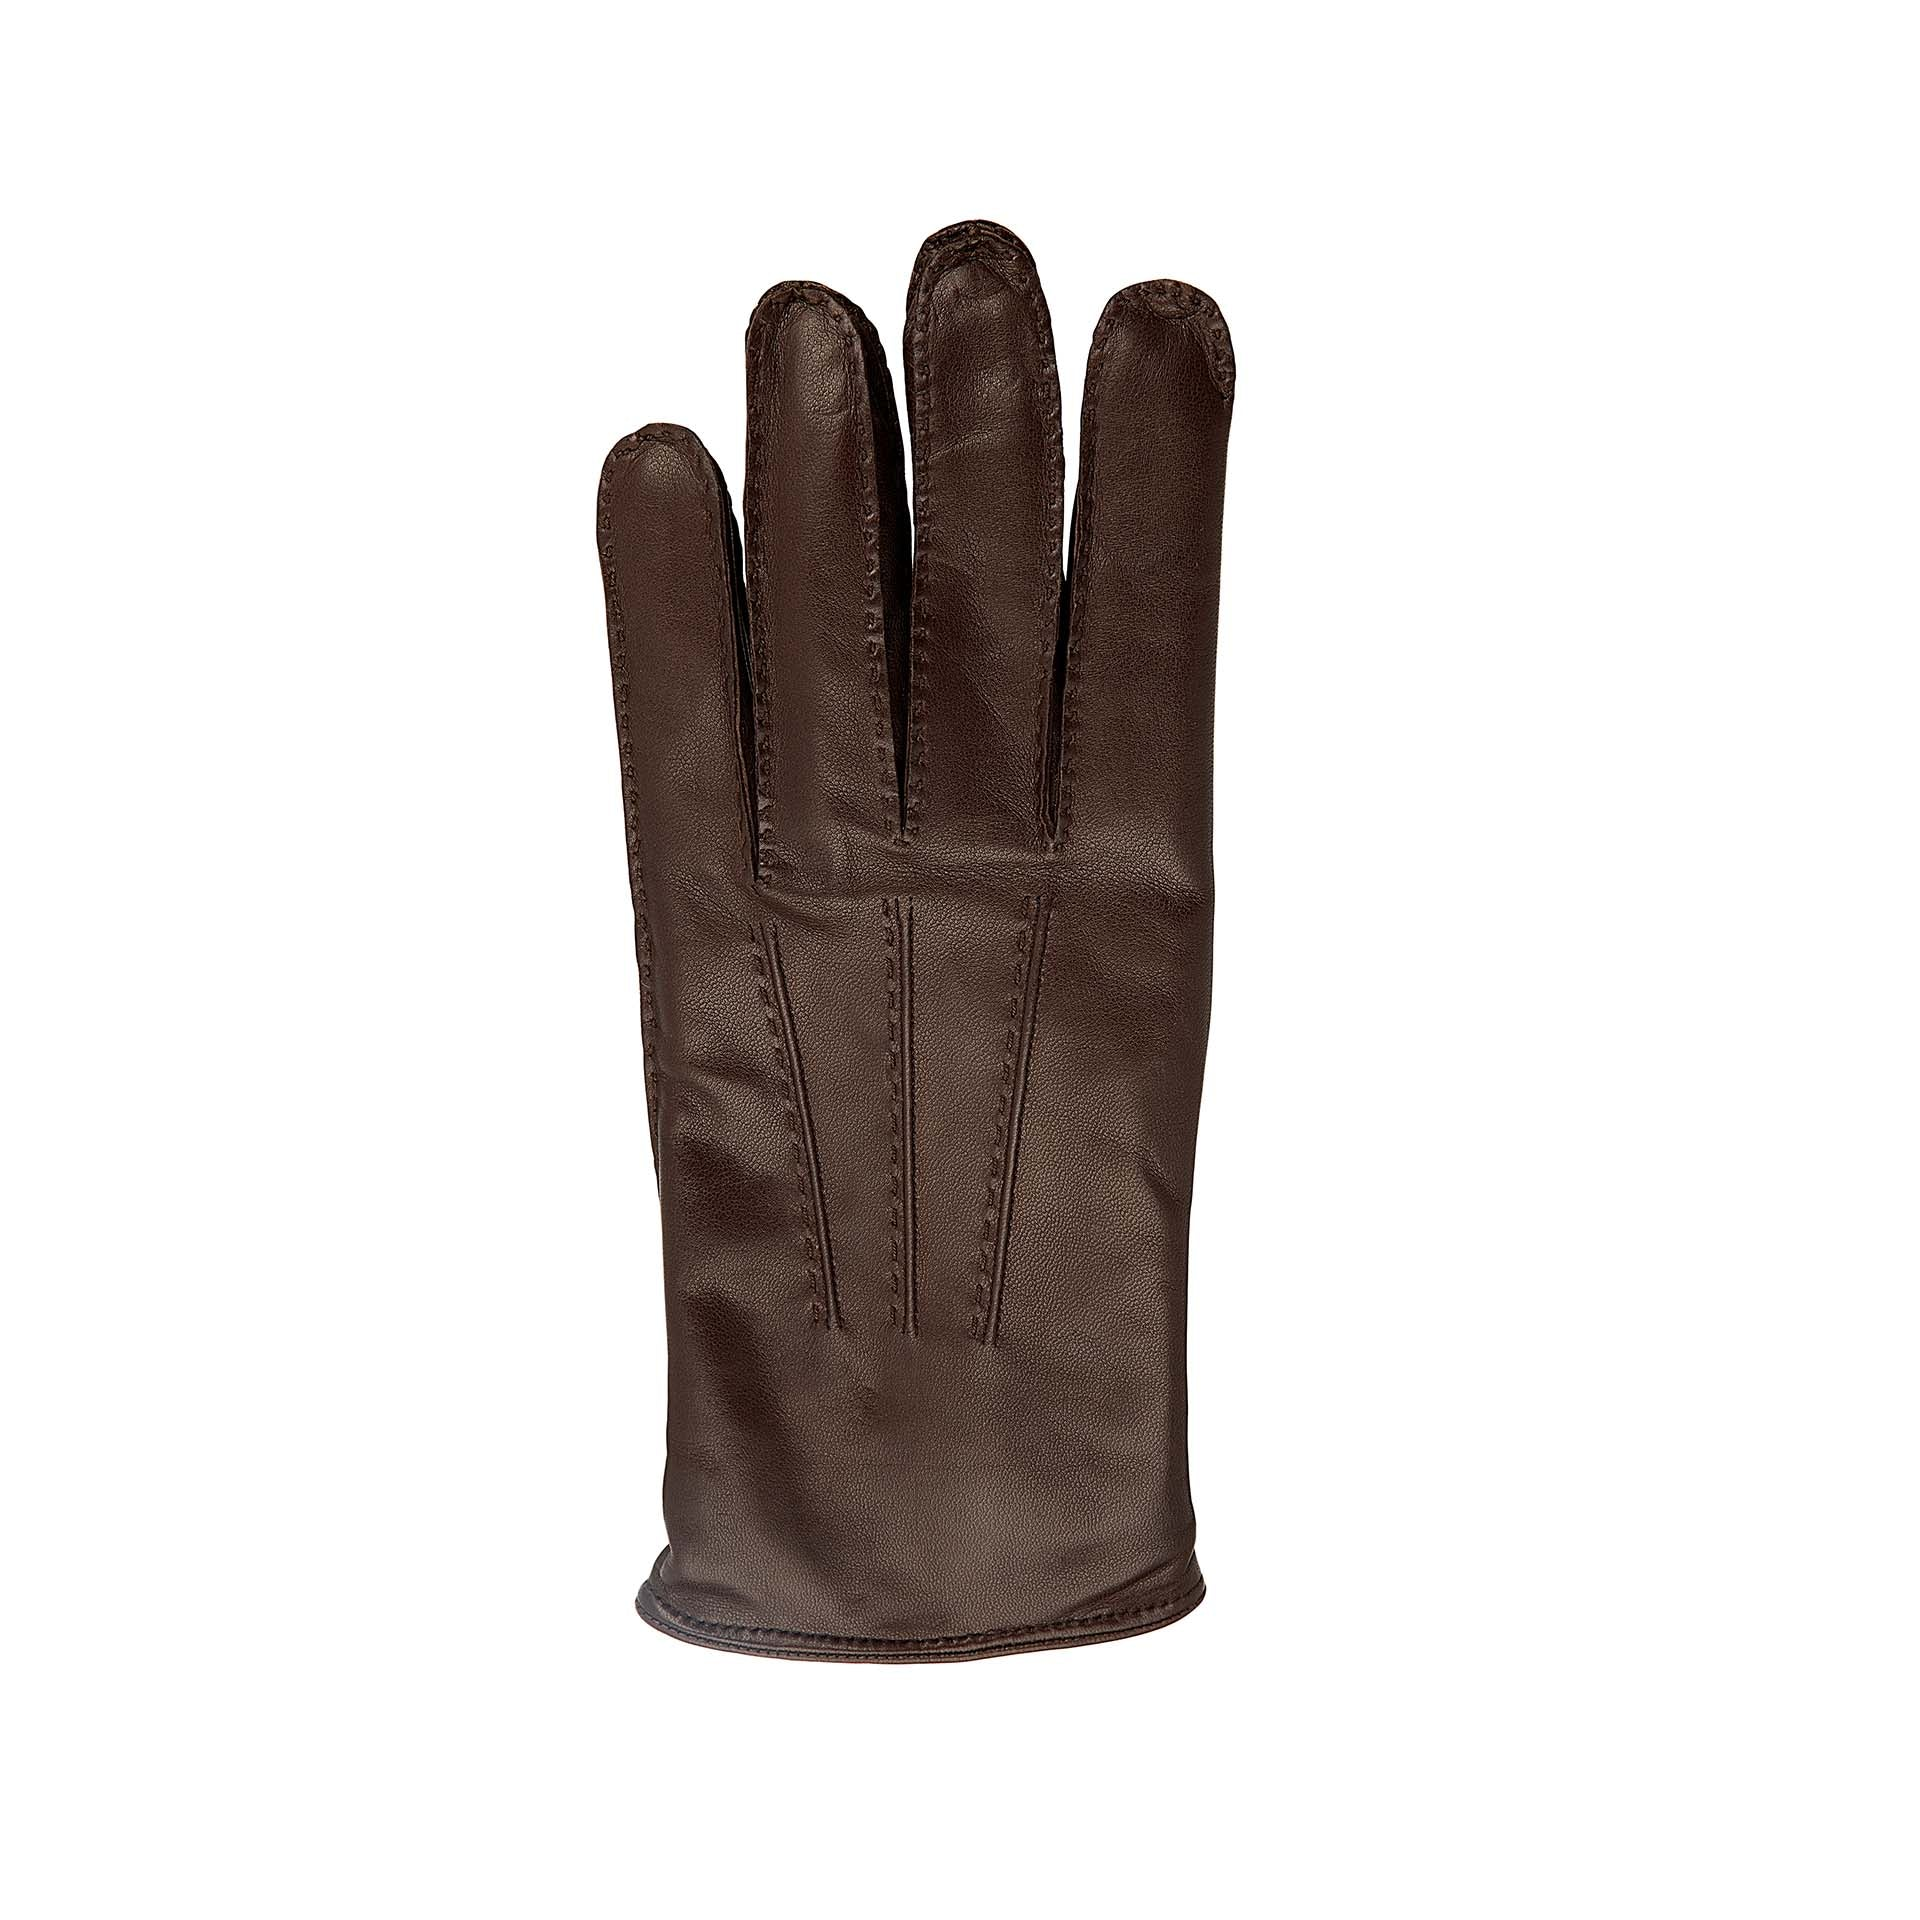 Dark brown leather gloves